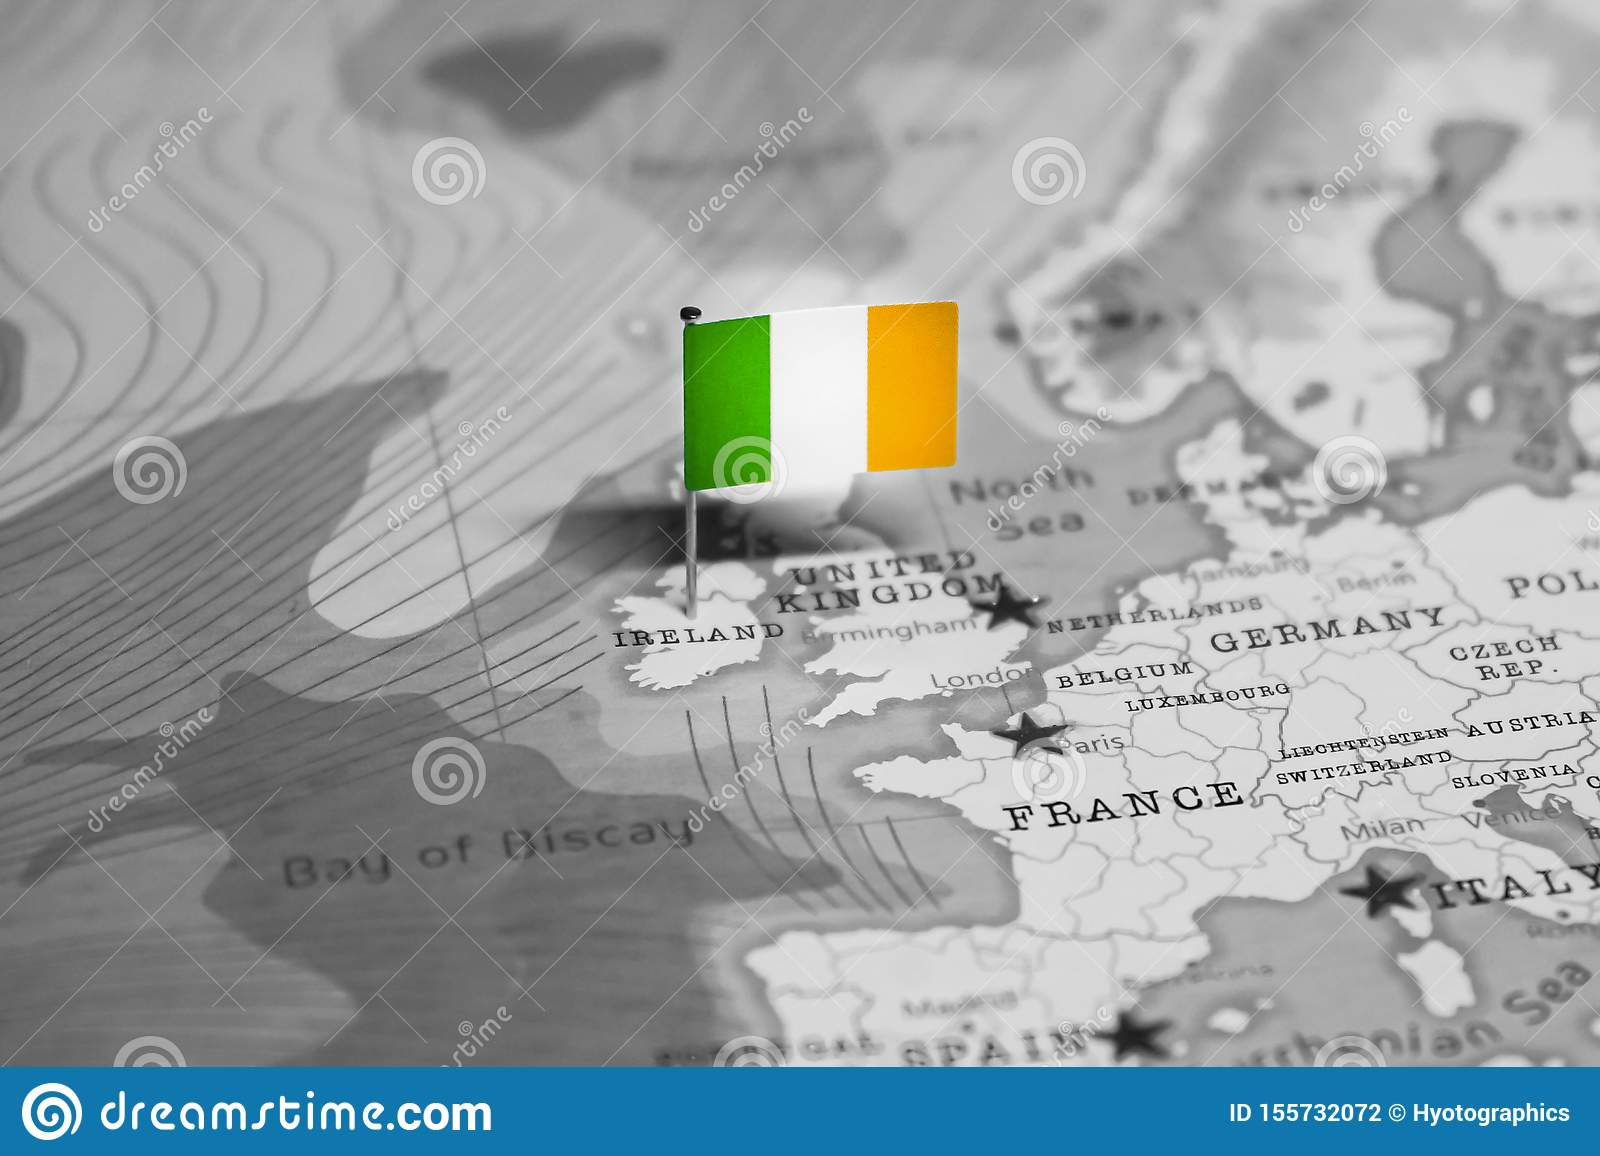 The Flag Of Ireland In The World Map Stock Photo - Image of ...